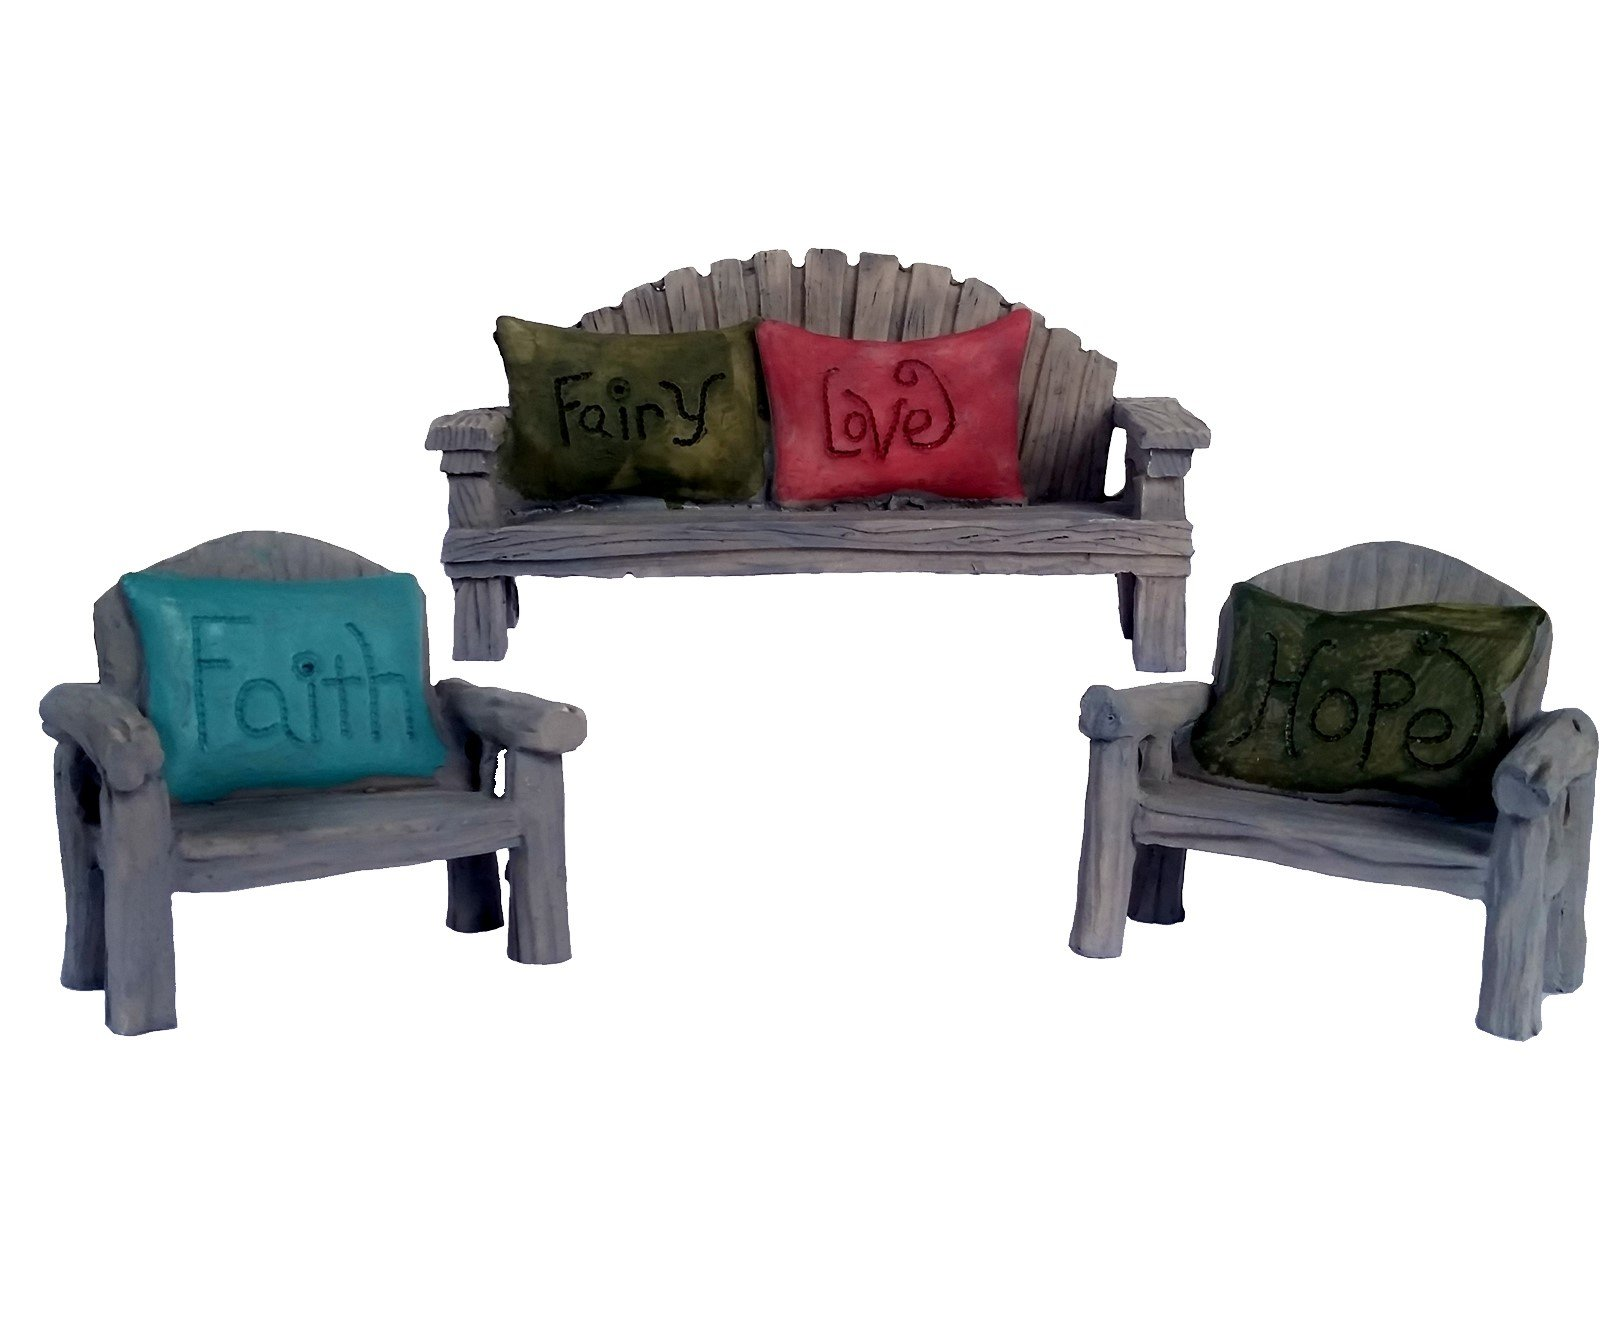 Fairy Garden Seating Chairs and Bench, 3 Piece Set with Fairy Faith, Hope and Love Pillows (3)